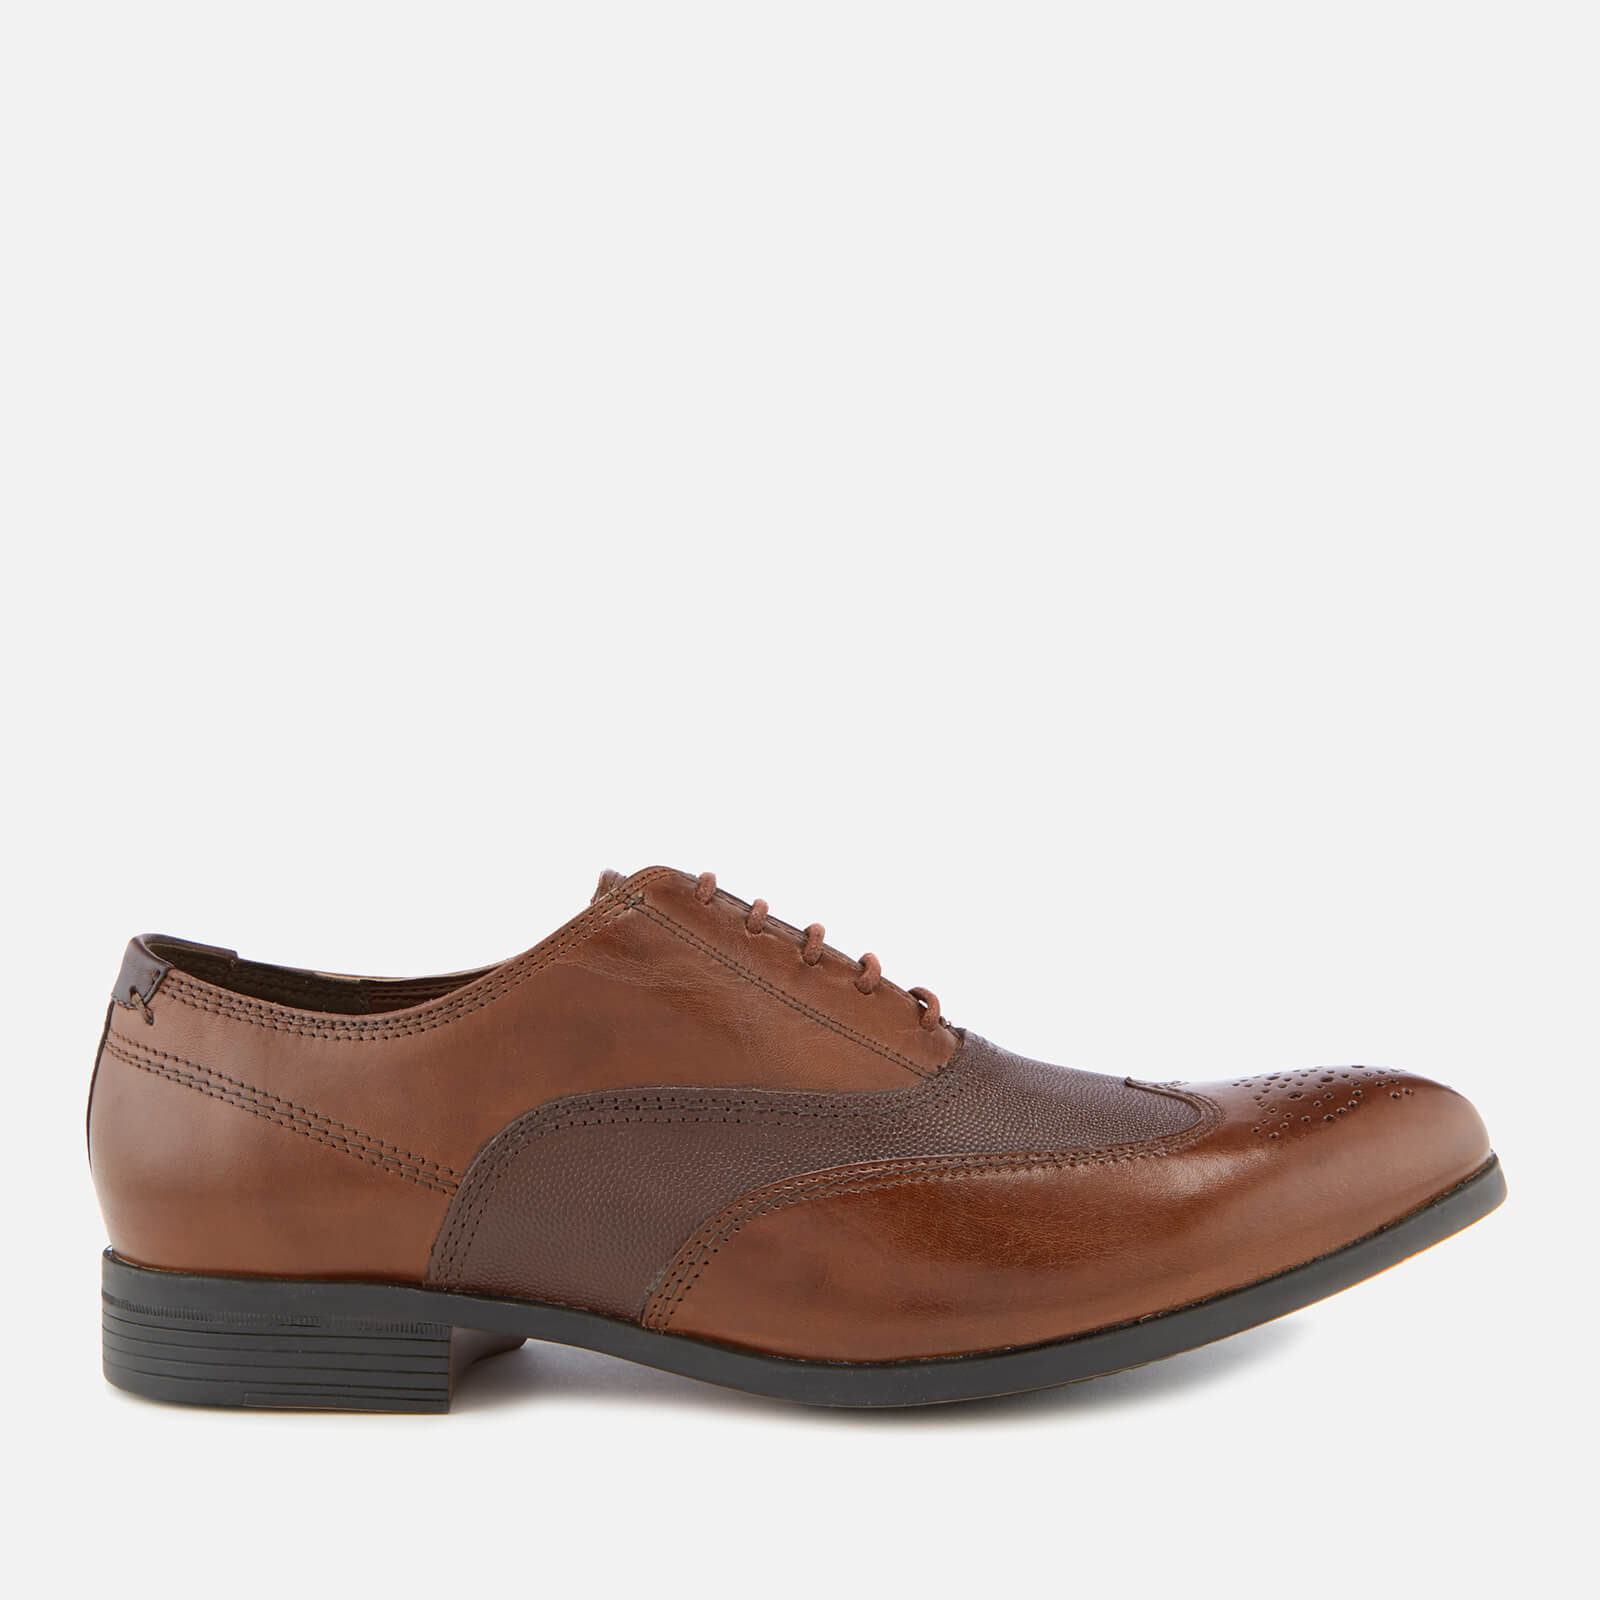 ef31100fd51 Clarks Men s Gilmore Wing Leather Oxford Shoes - British Tan Combi ...